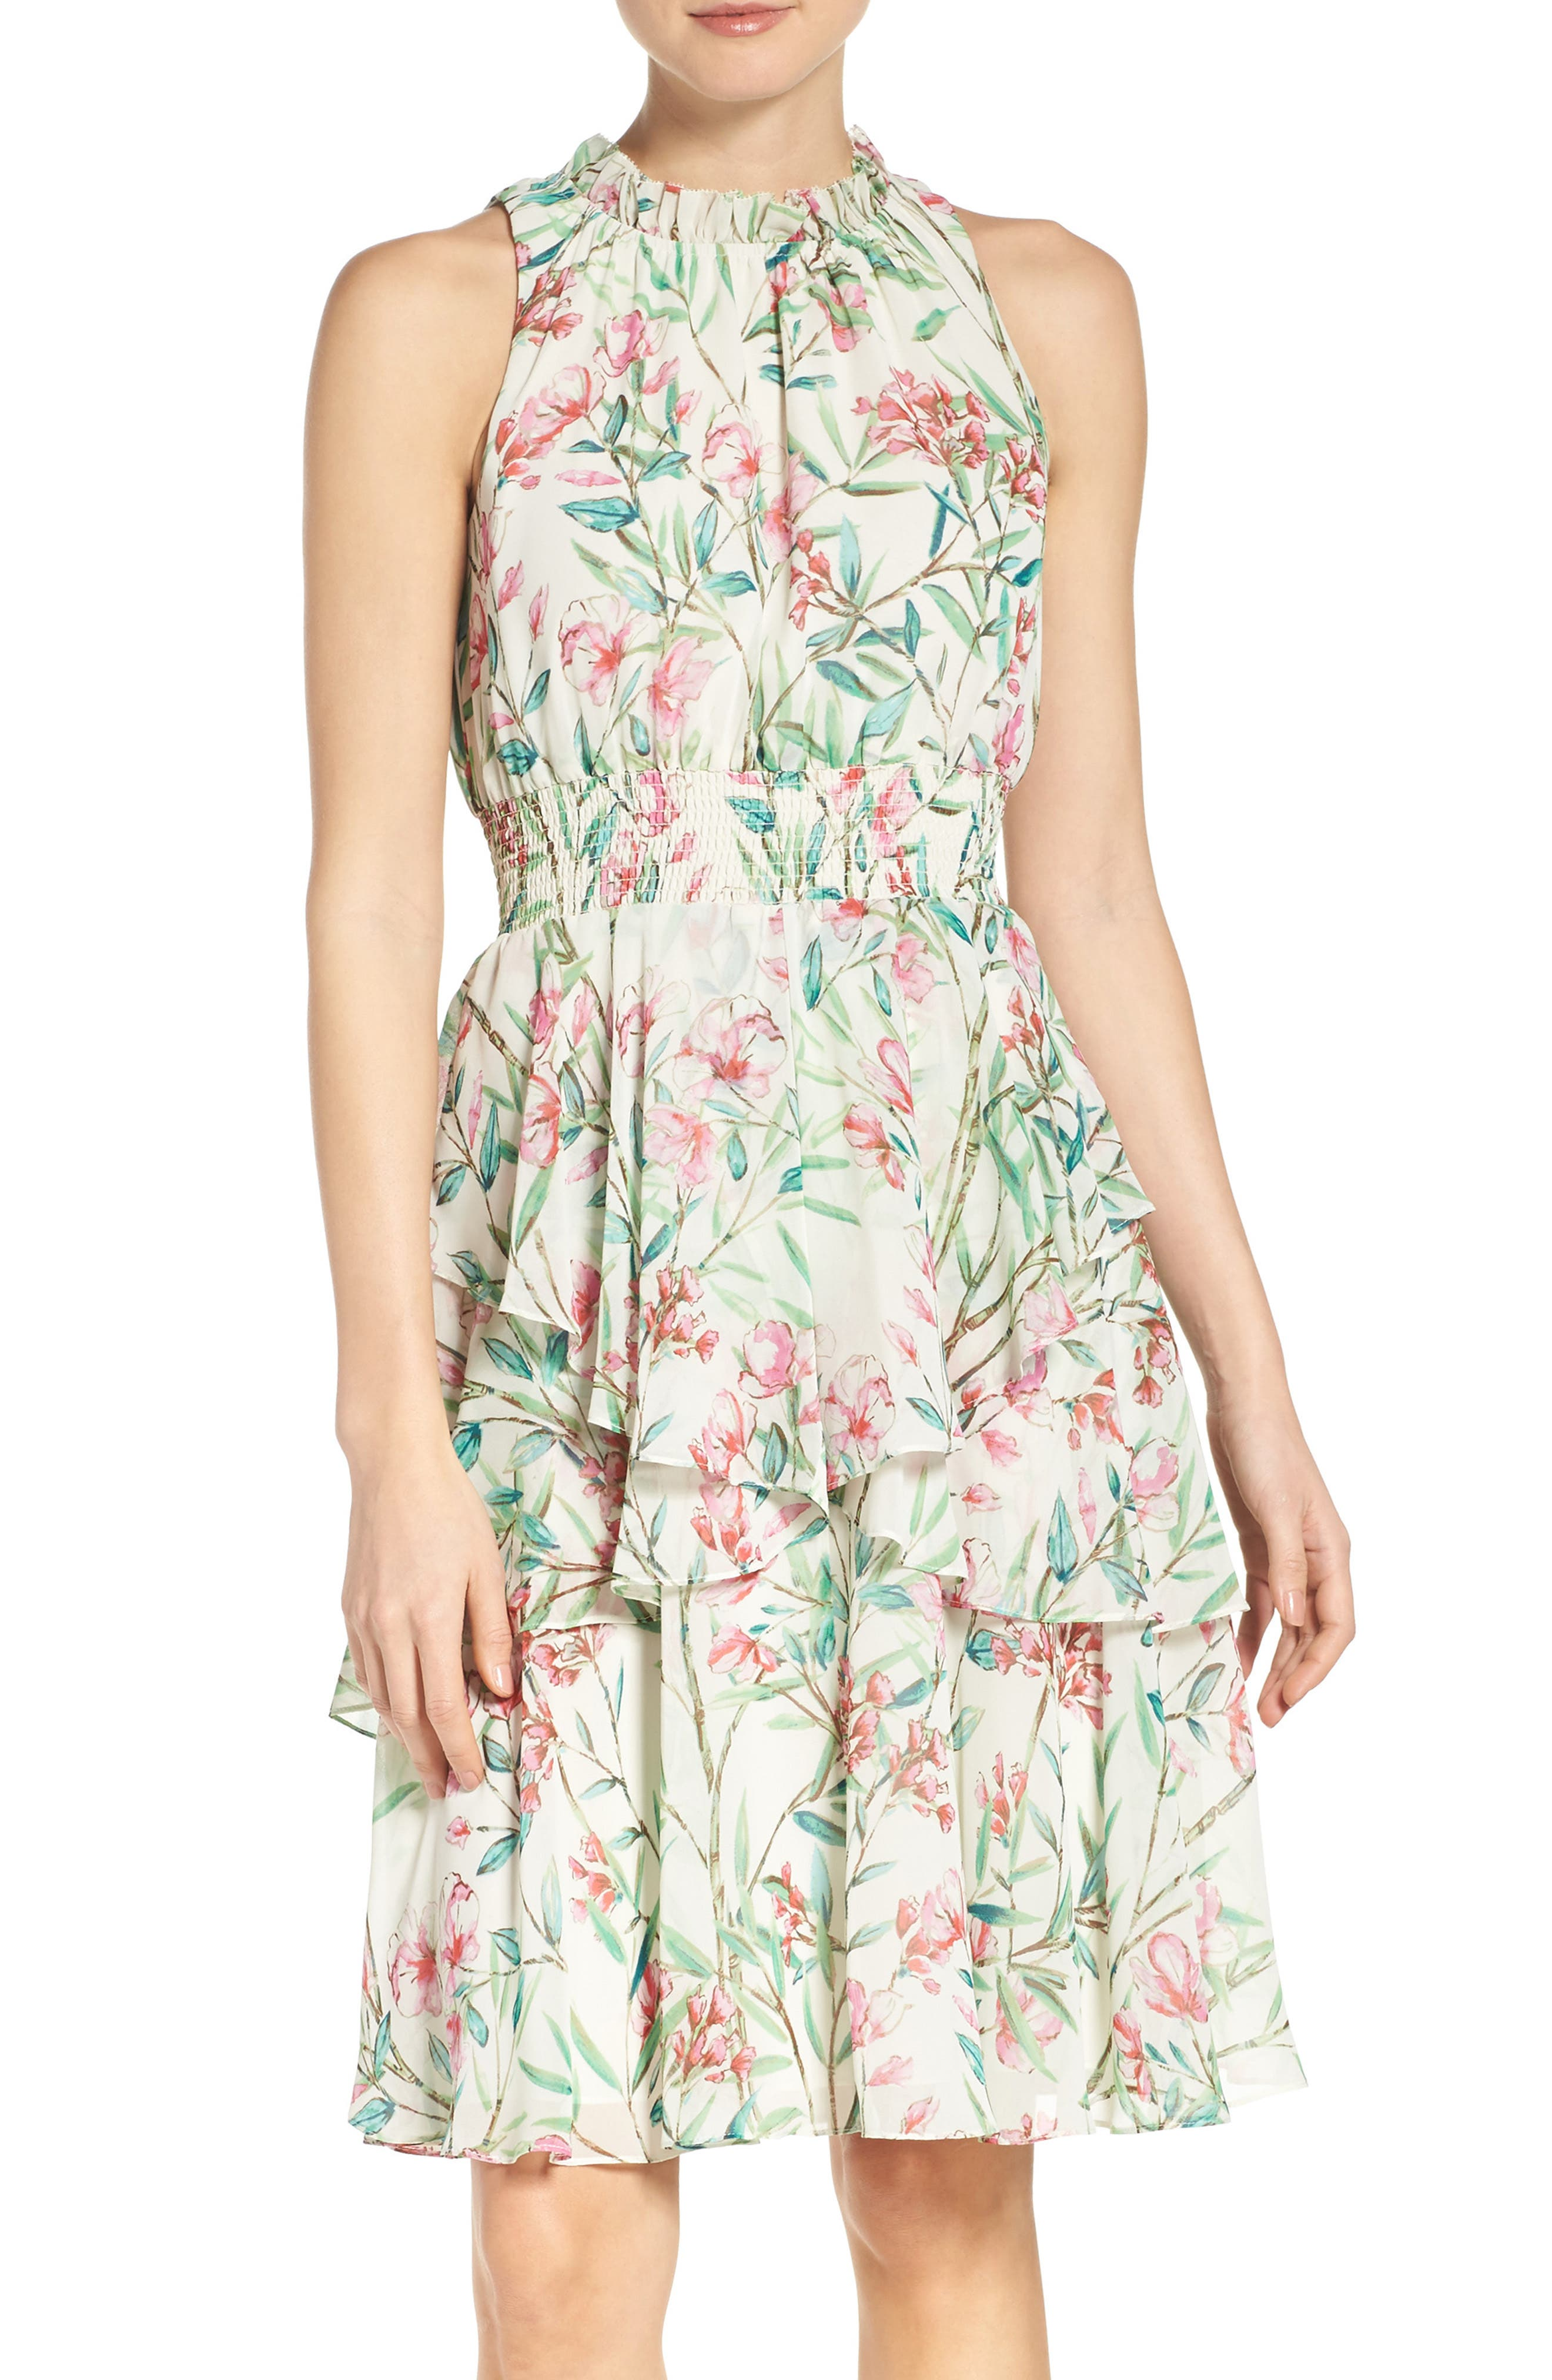 Chiffon Fit & Flare Dress,                         Main,                         color, Ivory/ Pink/ Green